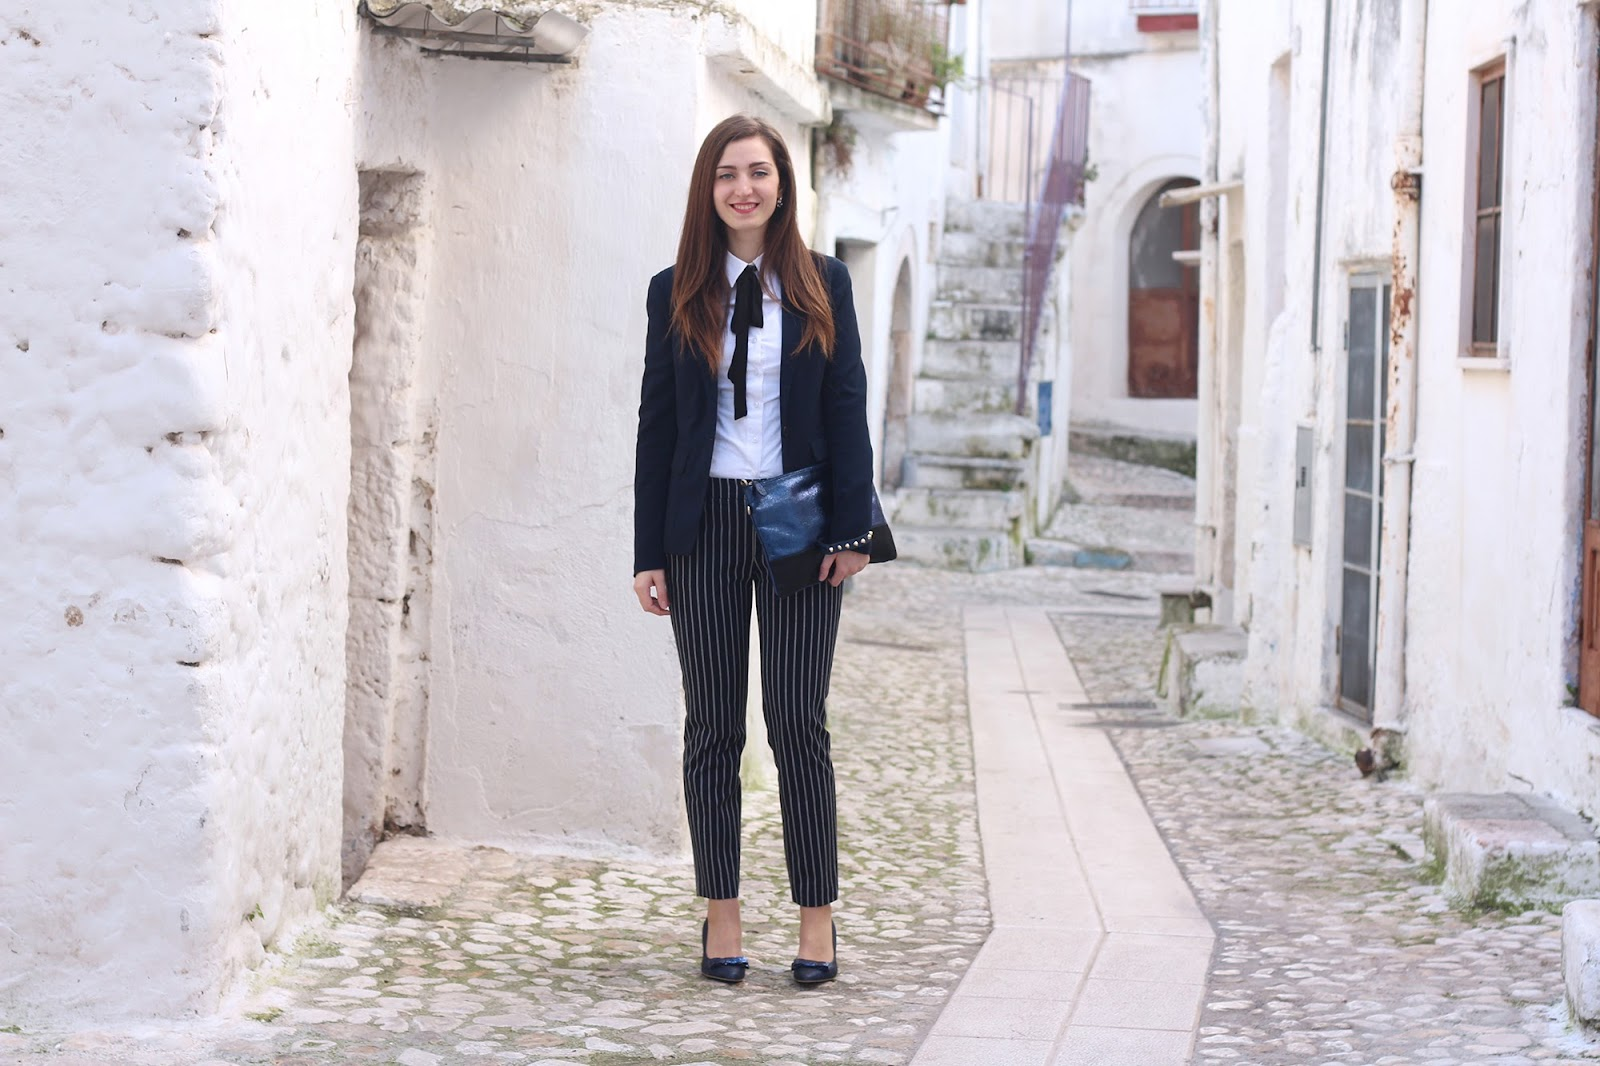 fashion moda blogger pescara italy laurea degree outfit ootd look love trend blue zara stripes red coat choies blue glitter heels shoes bow bijou brigitte earrings